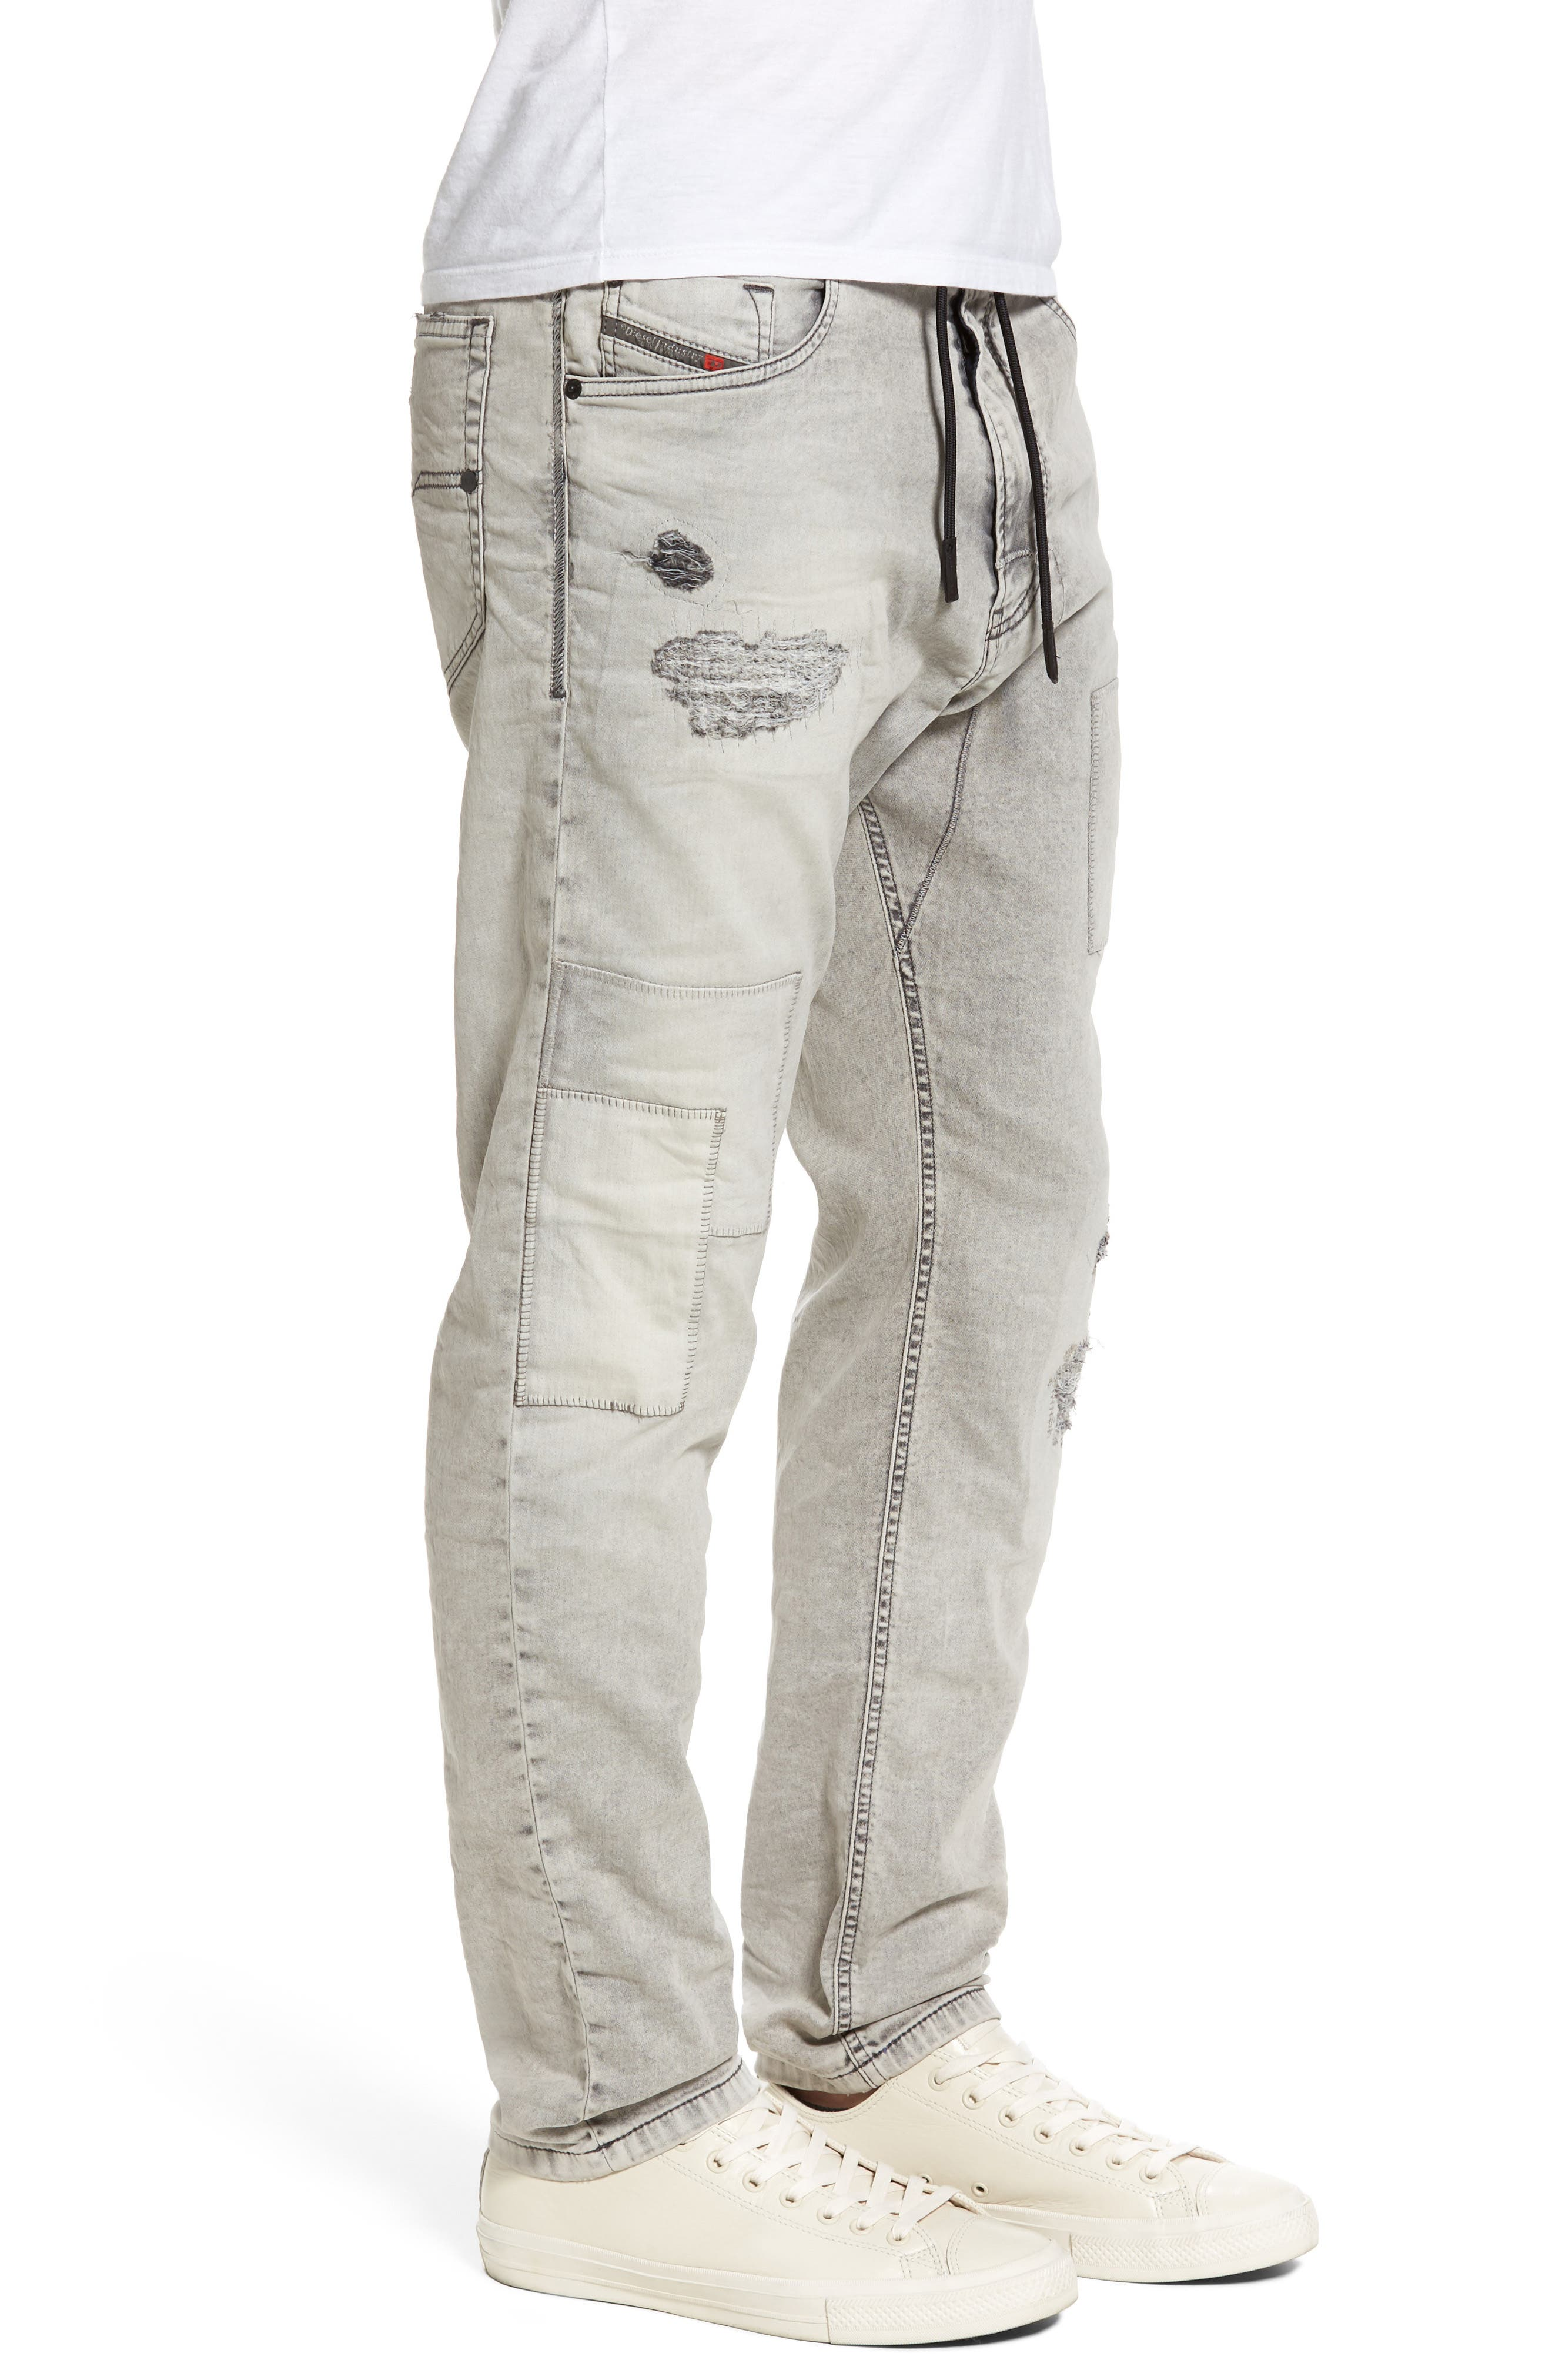 Narrot Slouchy Skinny Fit Jeans,                             Alternate thumbnail 3, color,                             0684M